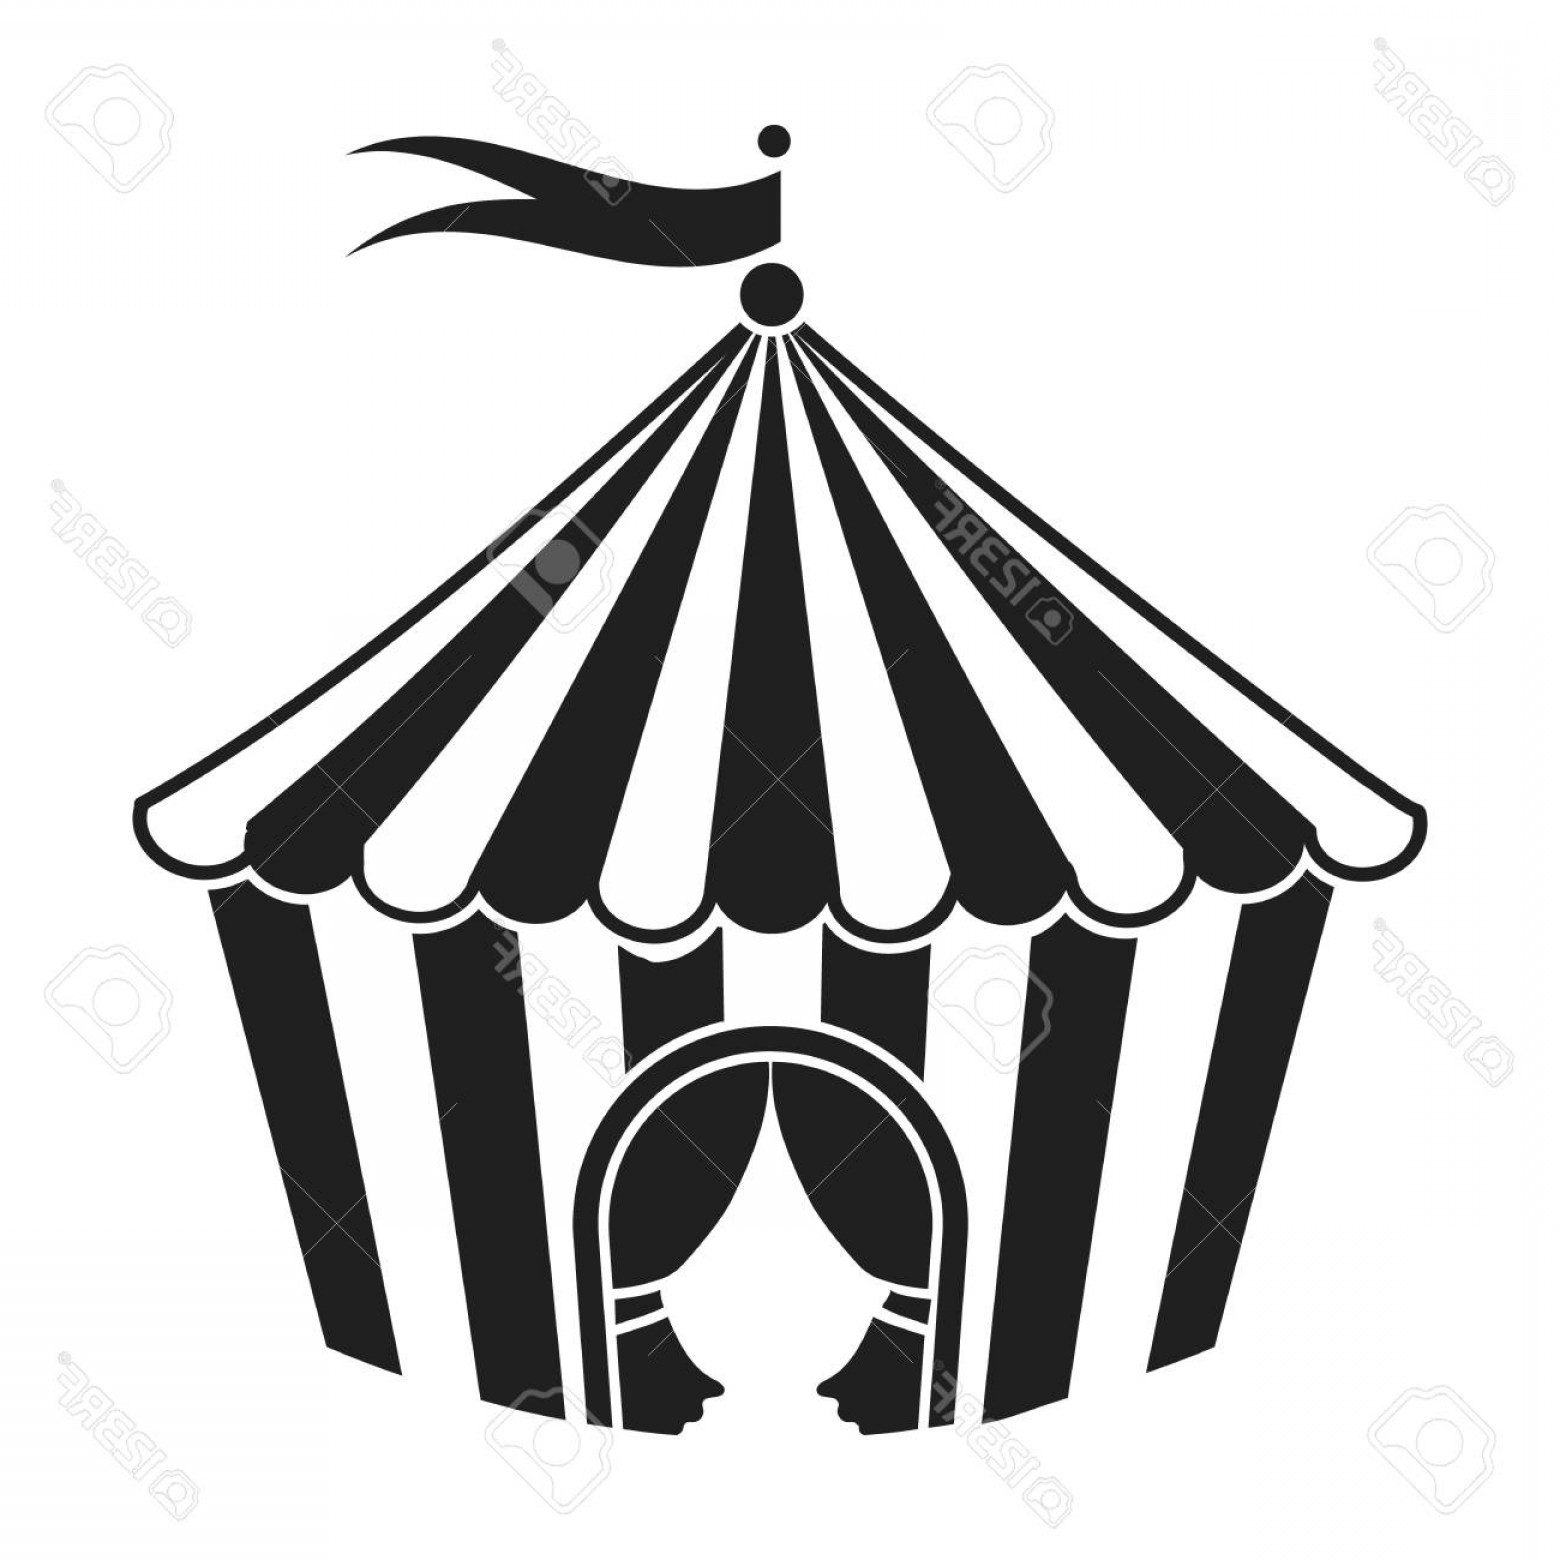 Black And White Circus Tent Vector.